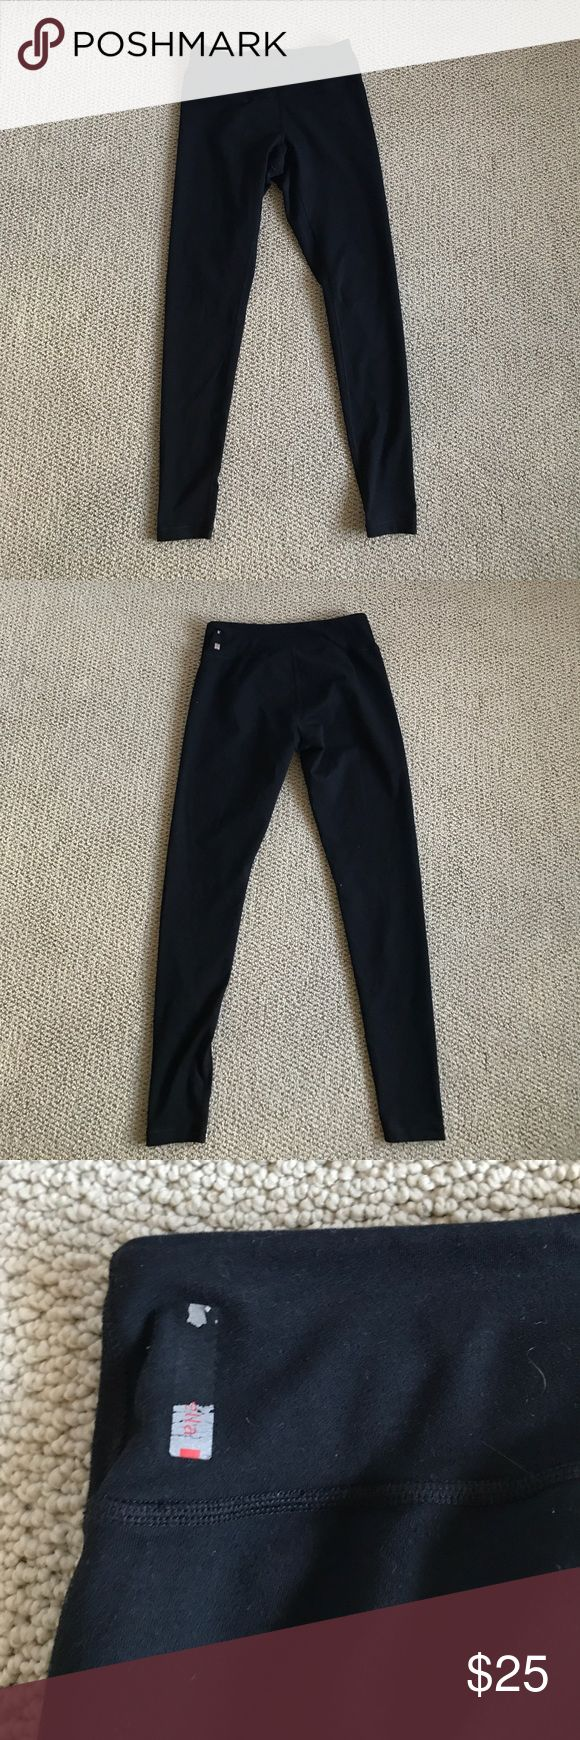 Zella Live In Legging Zella live in legging. Worn a handful of times, but logo is slightly worn off. Minor piling but tons of life left in them! Zella Pants Leggings